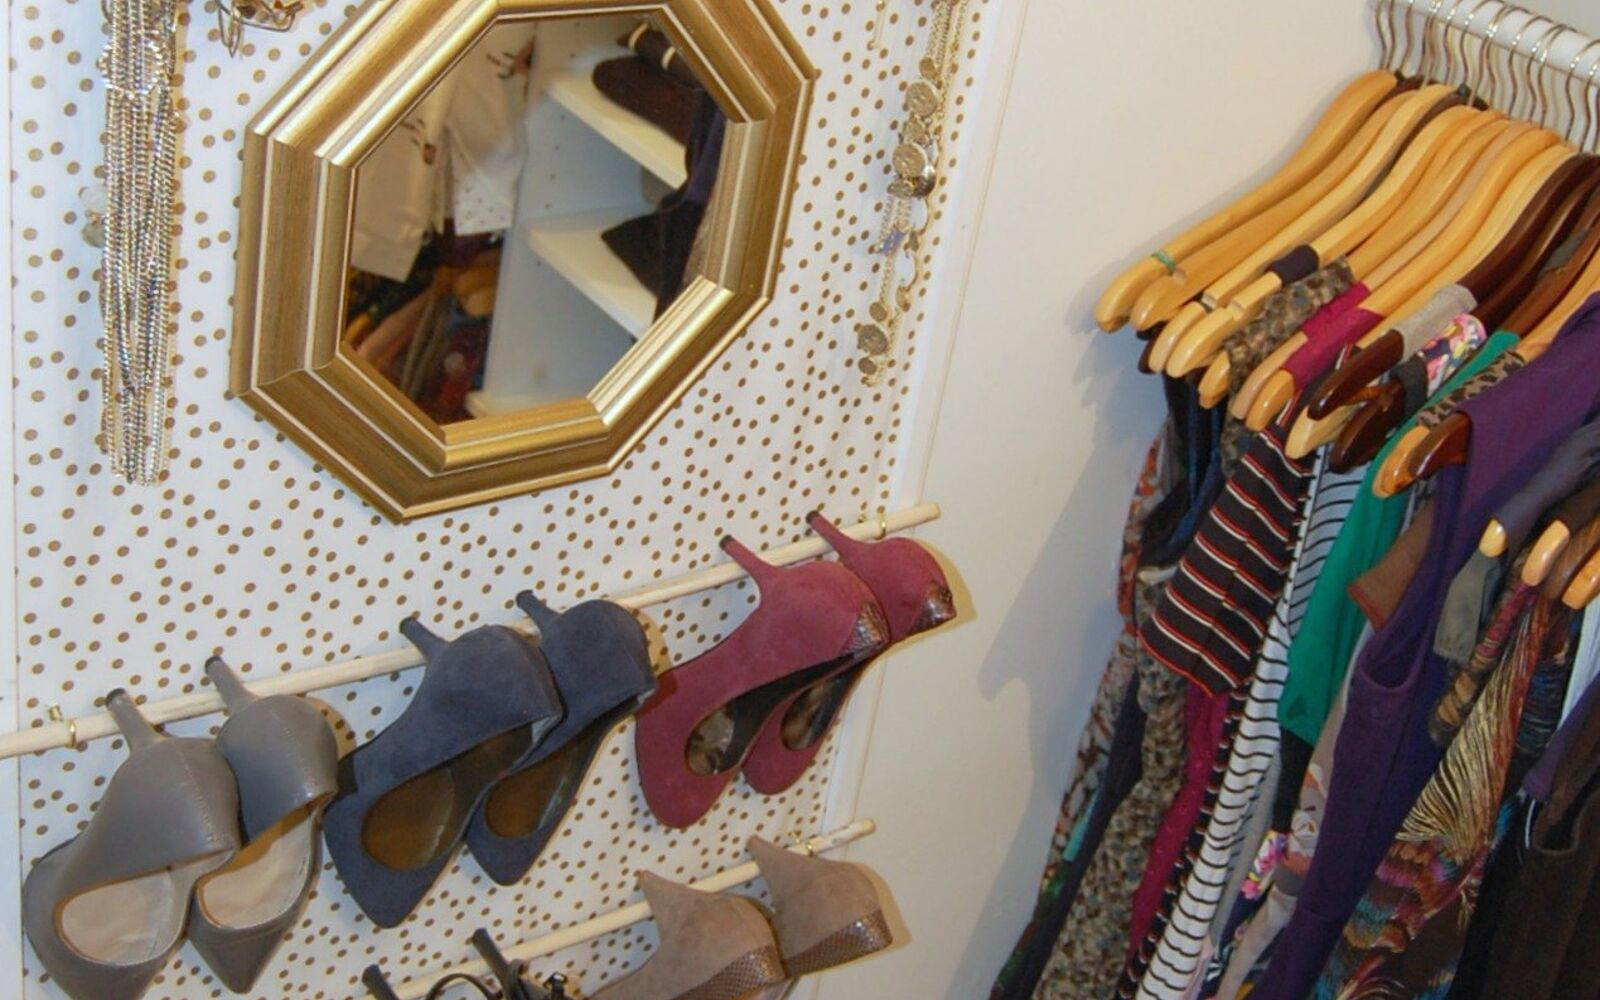 s 30 fun ways to keep your home organized, Build A Shoe Holder With Fabric